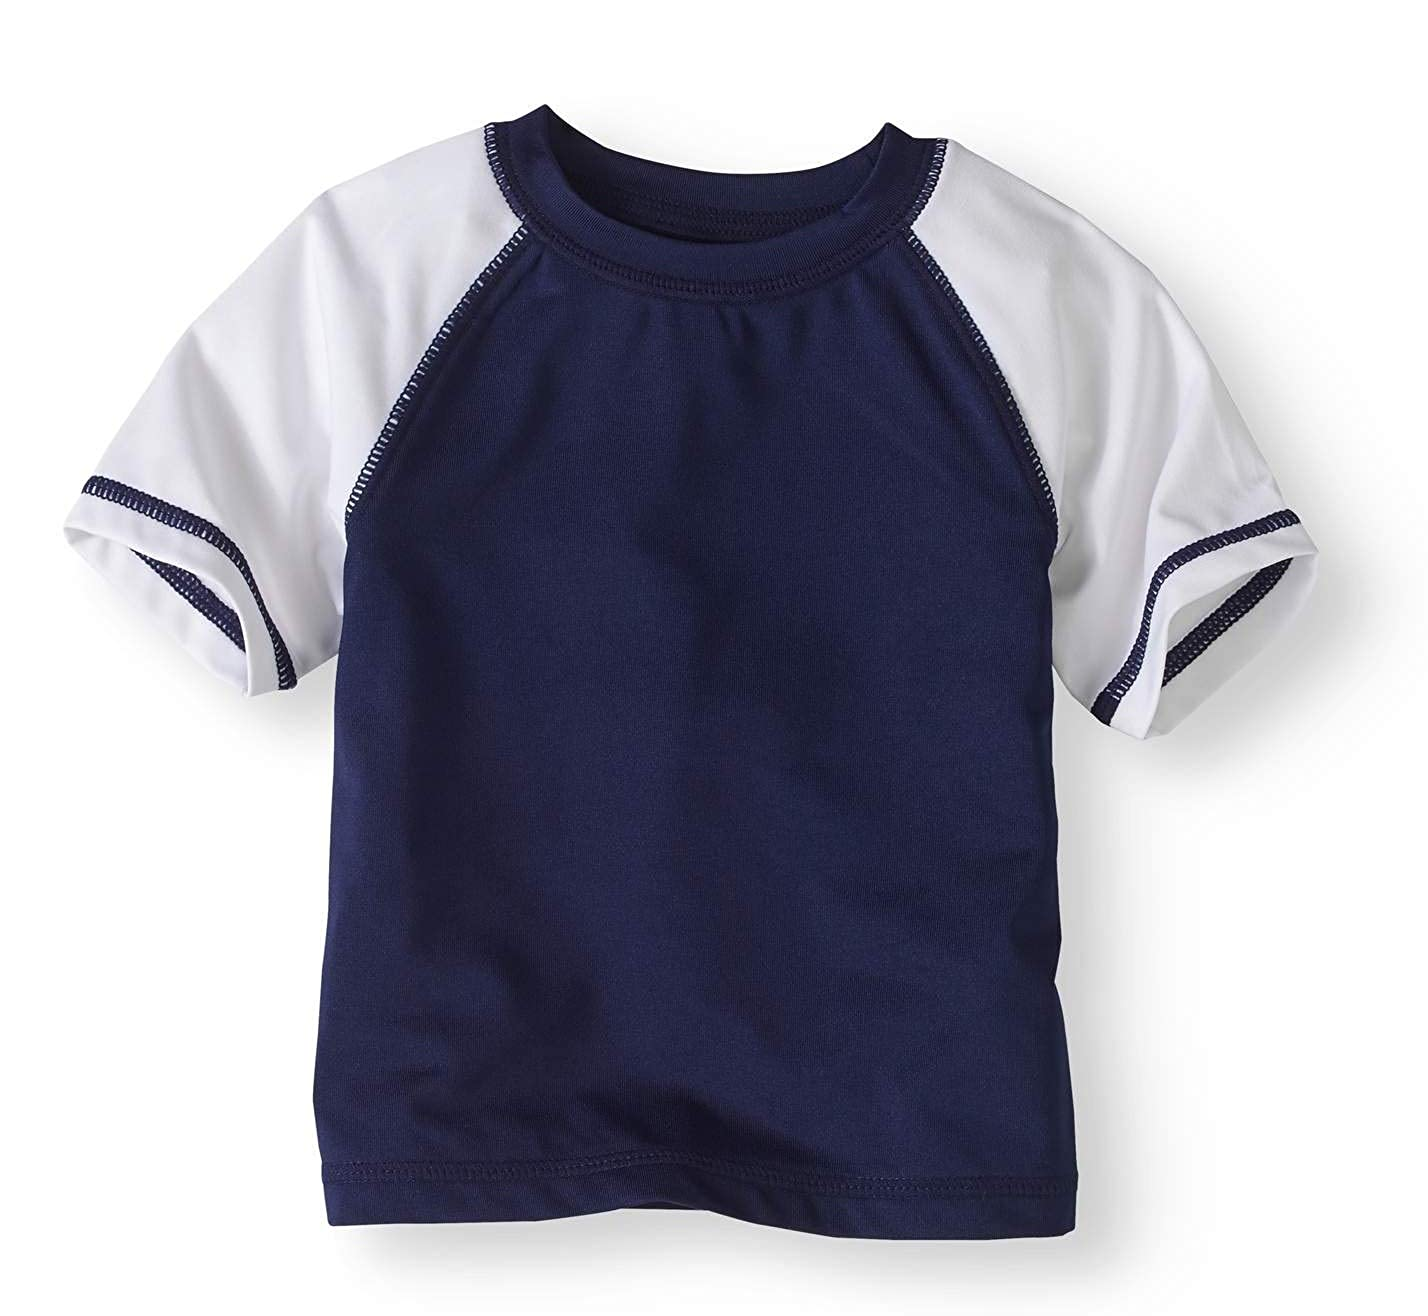 Healthtex Baby Boys Navy Blue Rash Guard Shirt Top